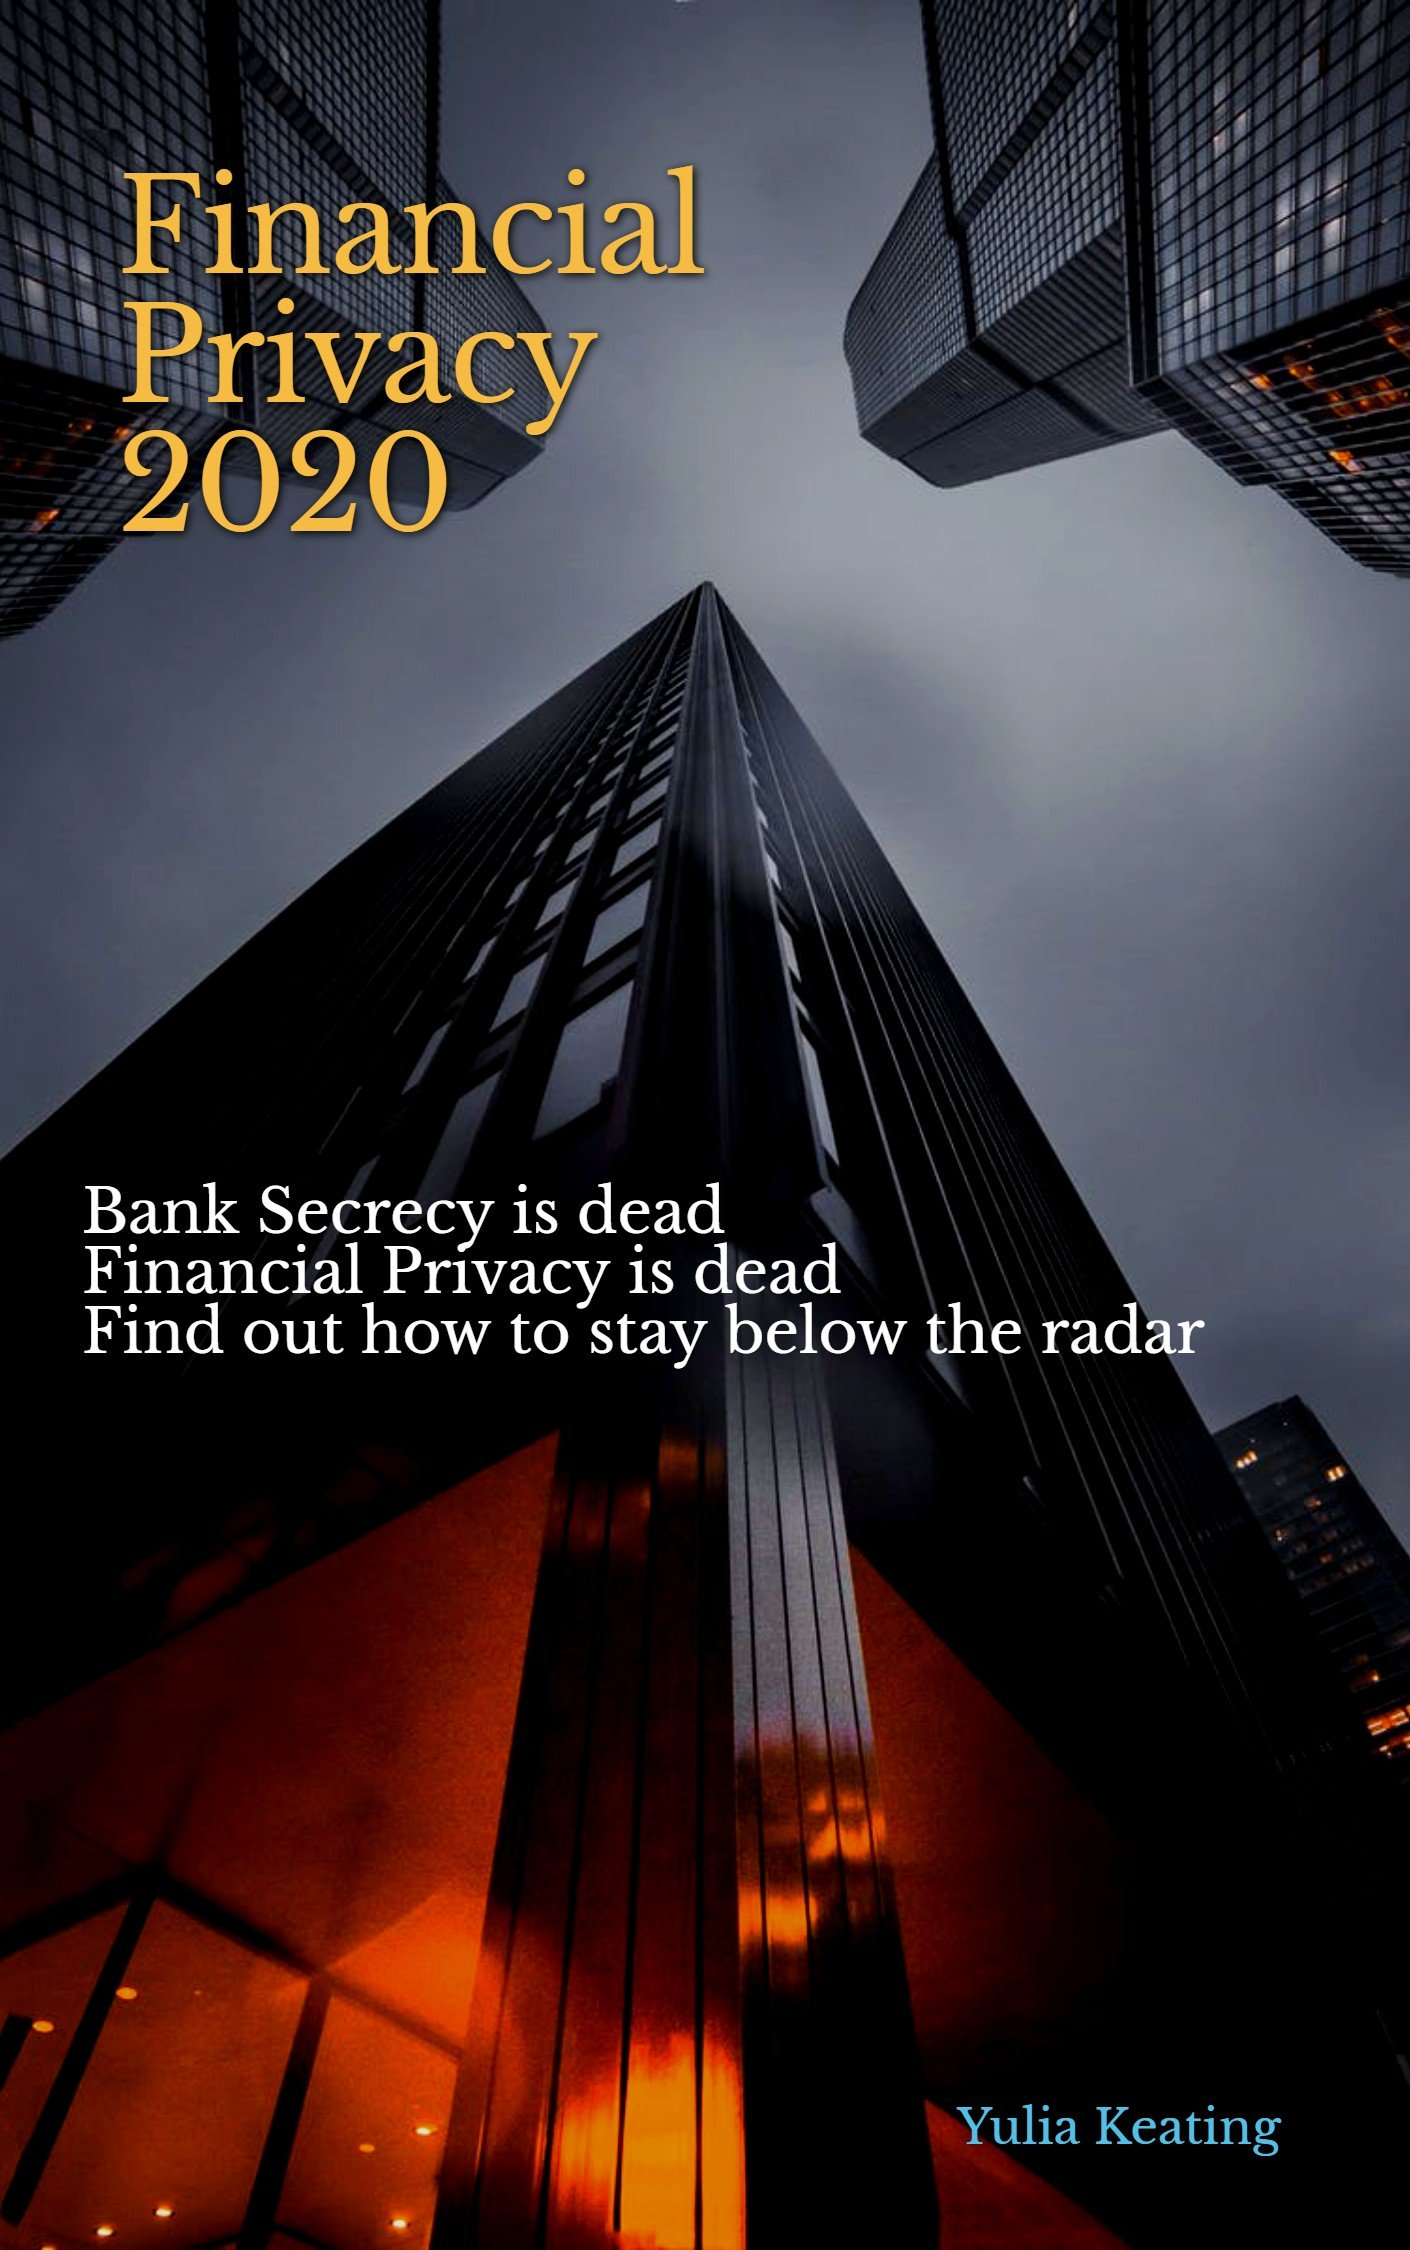 Financial privacy 2020 Book Review